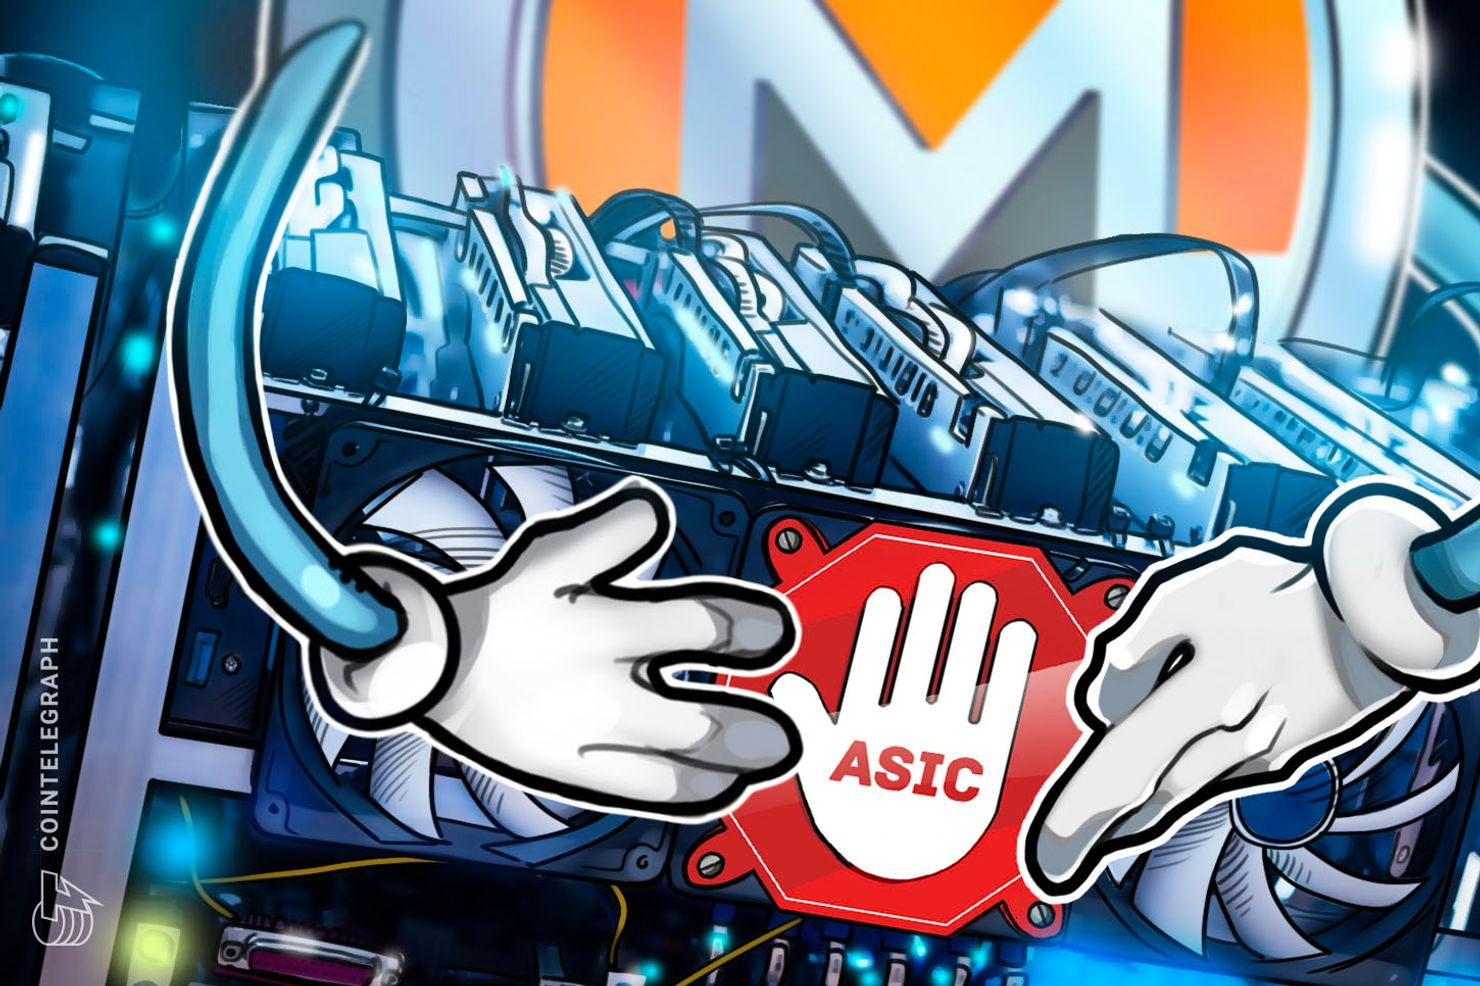 Decentralization First: Privacy Coin Monero Cuts Out ASIC